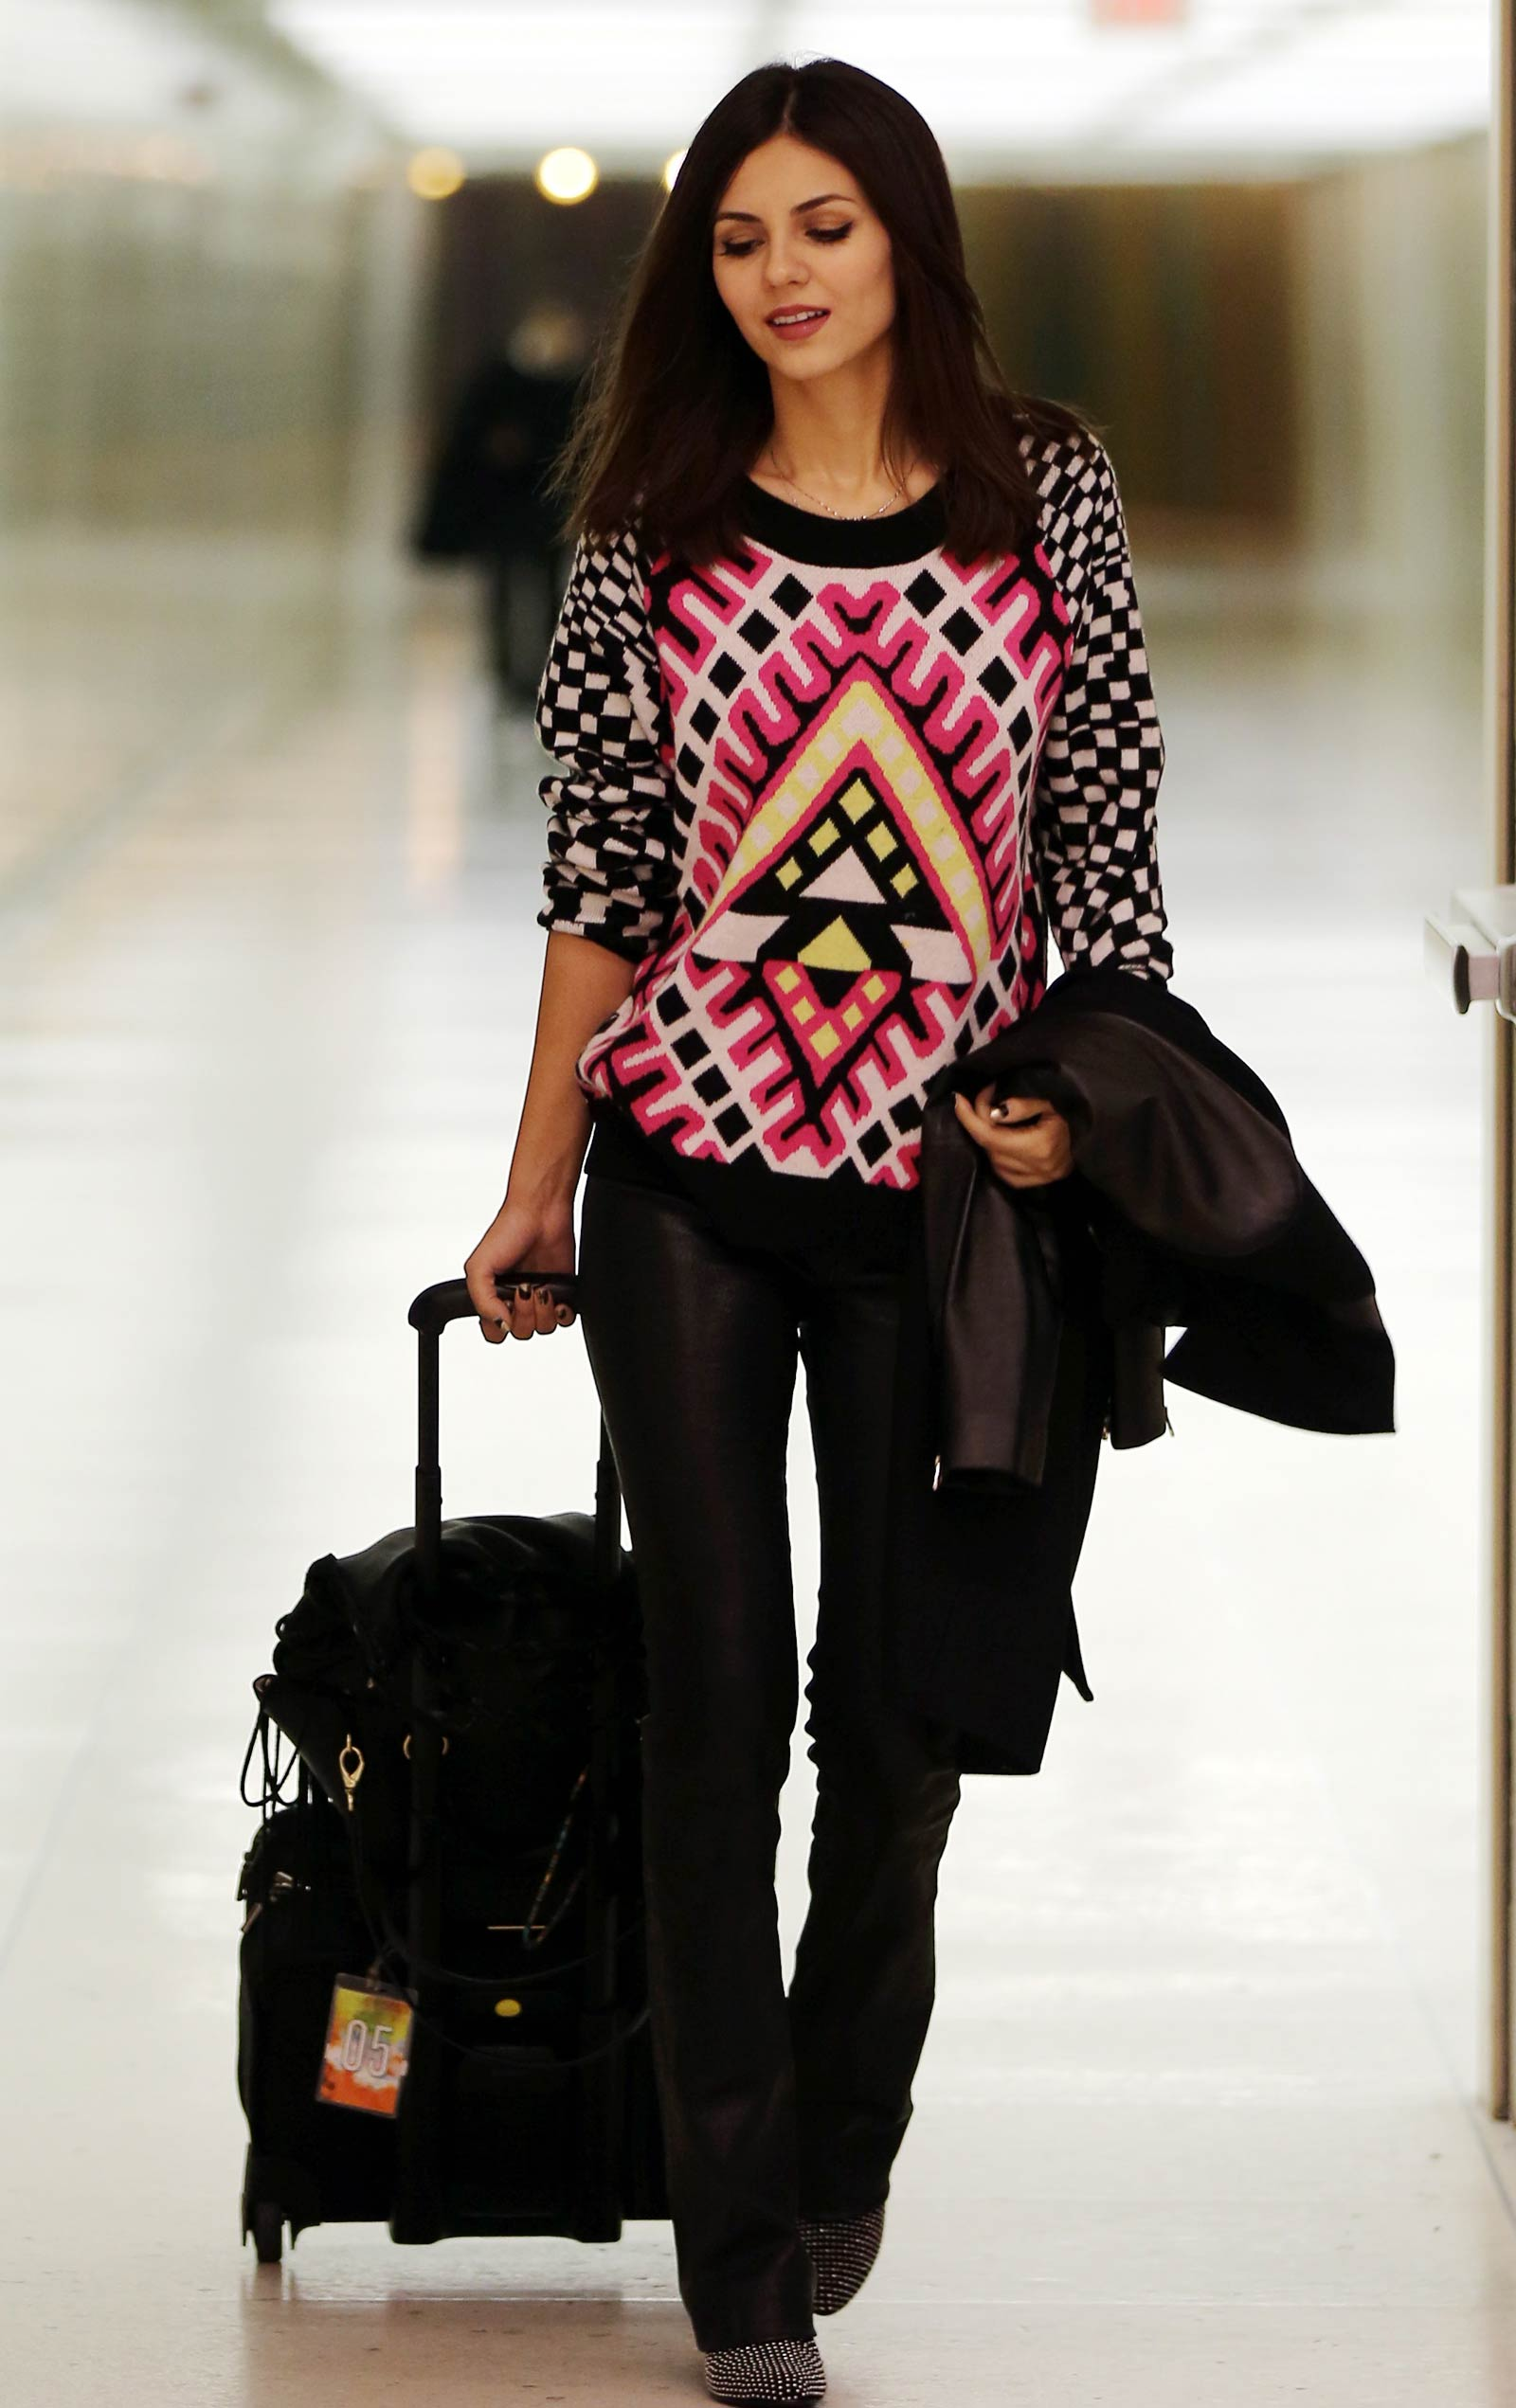 Victoria Justice at LAX airport arrival